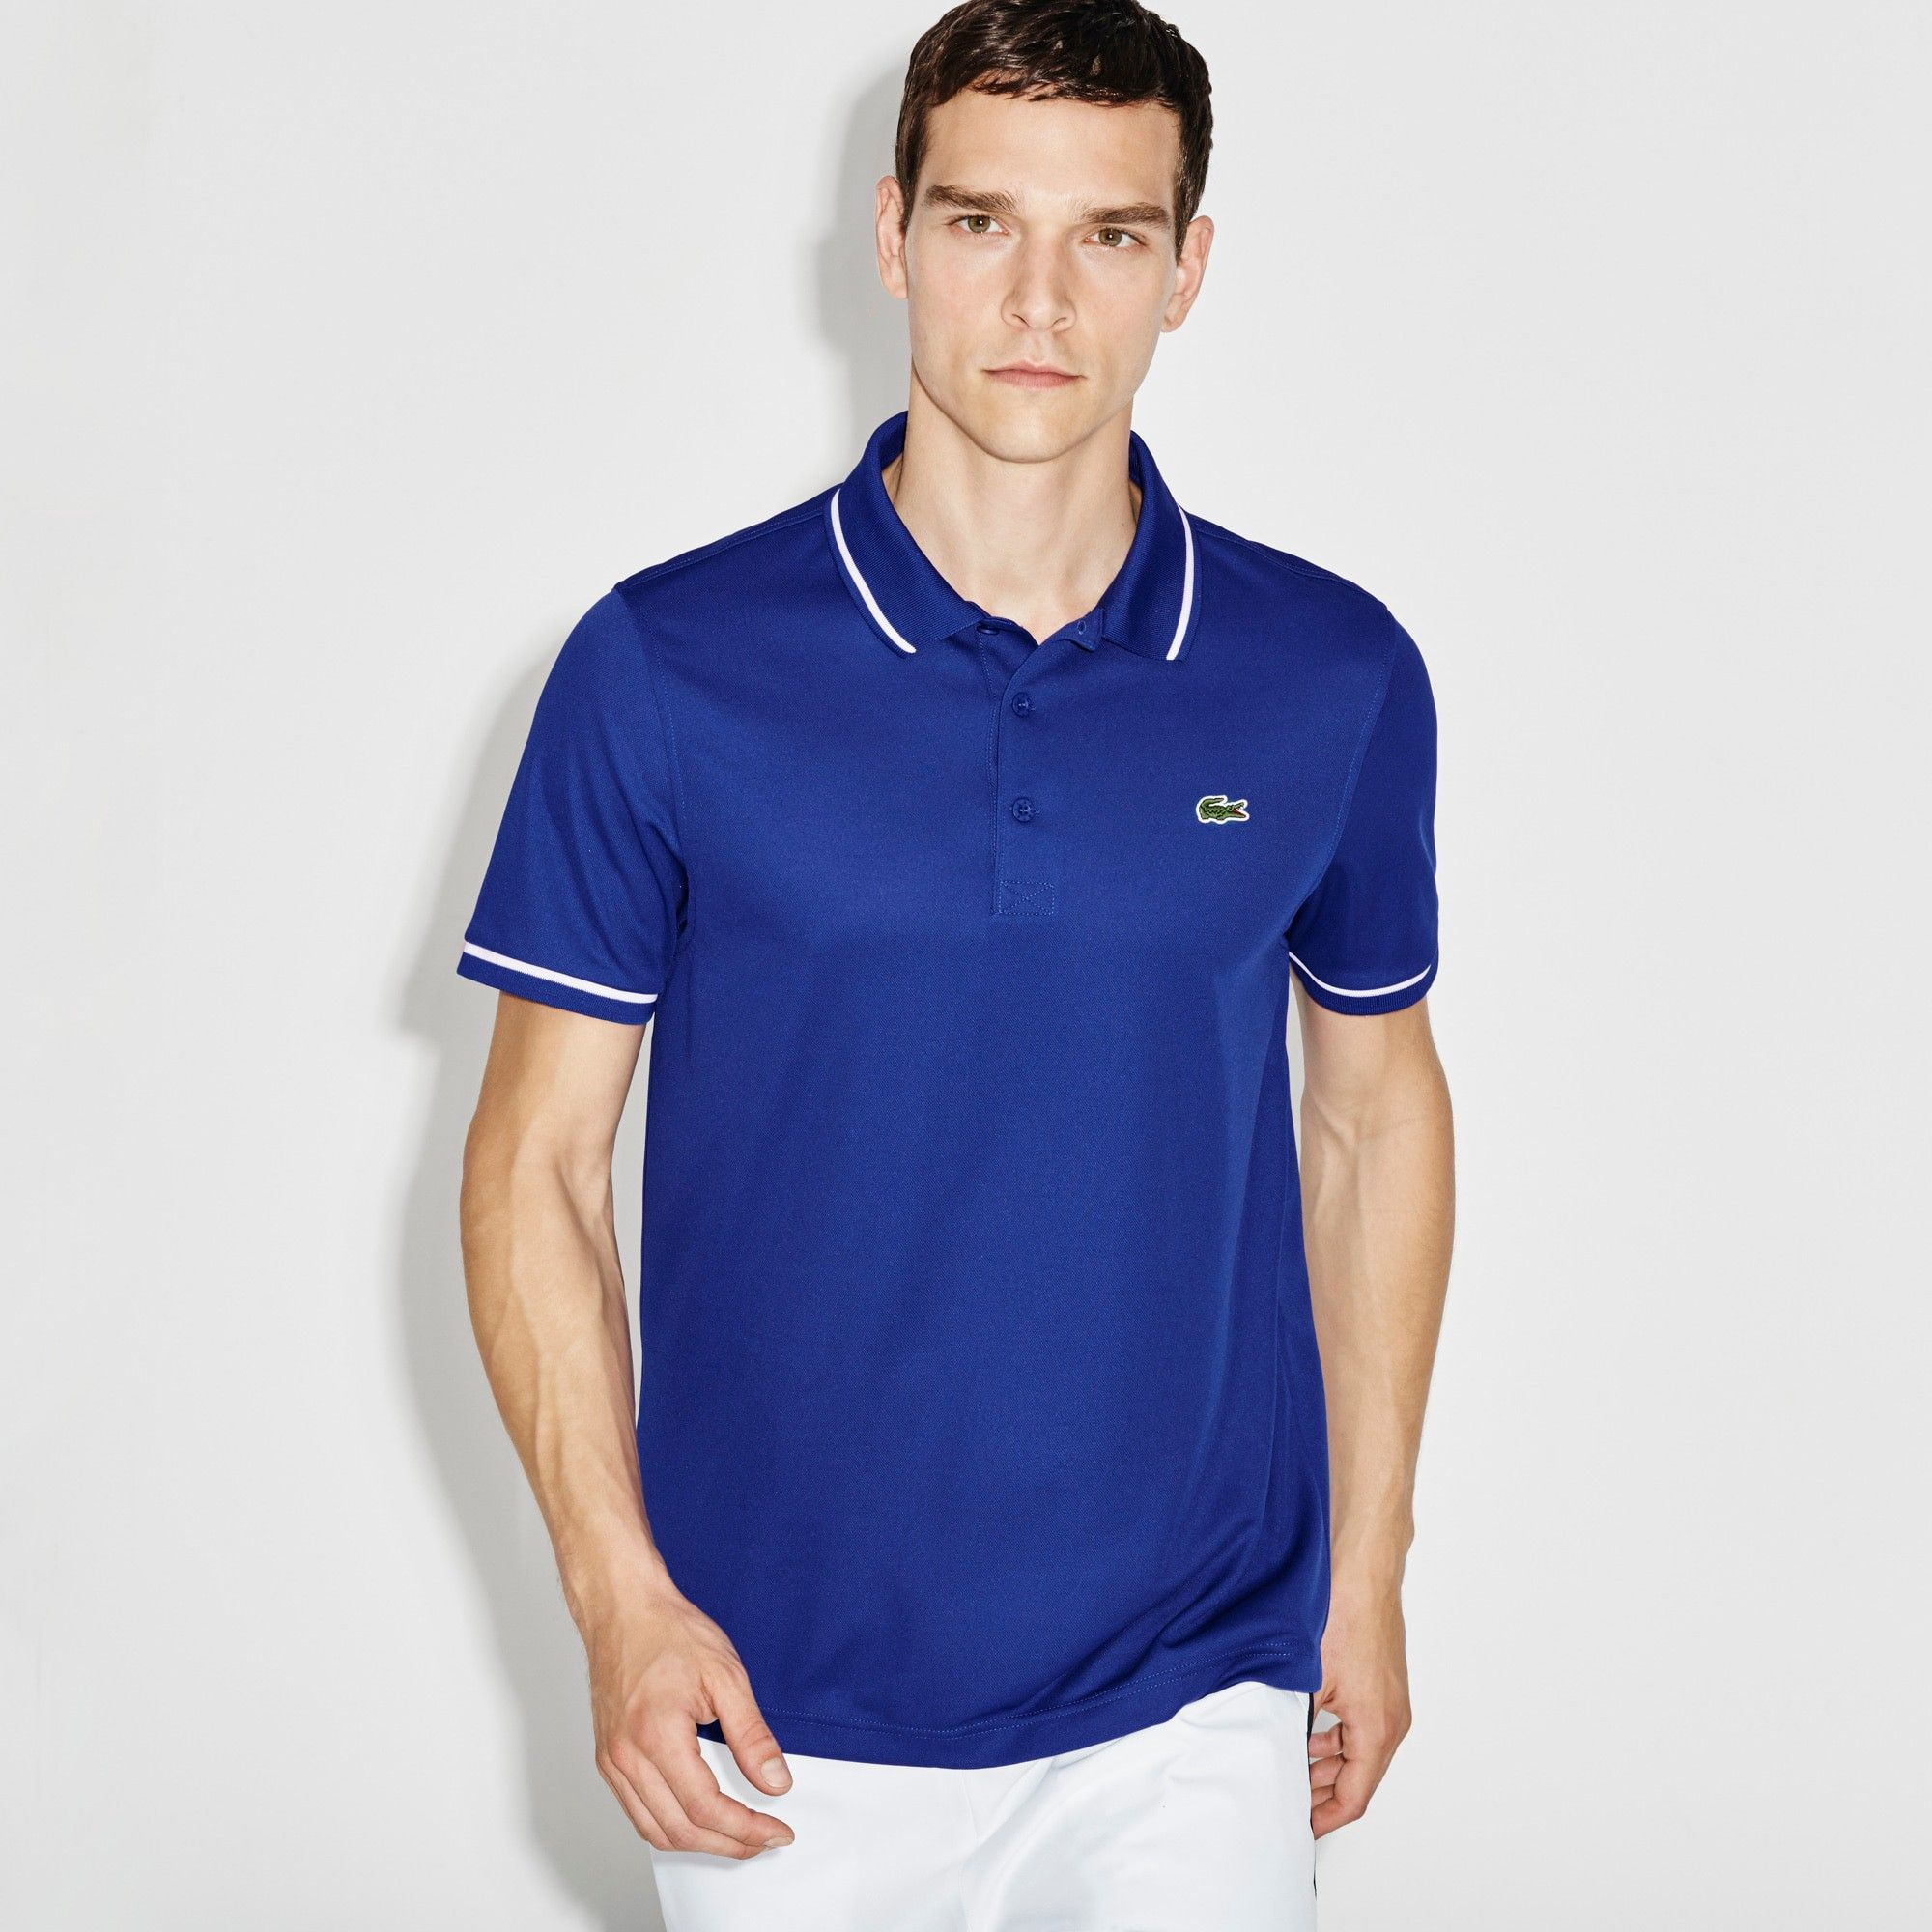 a9ffdad81 LACOSTE Men's SPORT Ultra-Dry Piping Tennis Polo Shirt - french royal  blue/white. #lacoste #cloth #